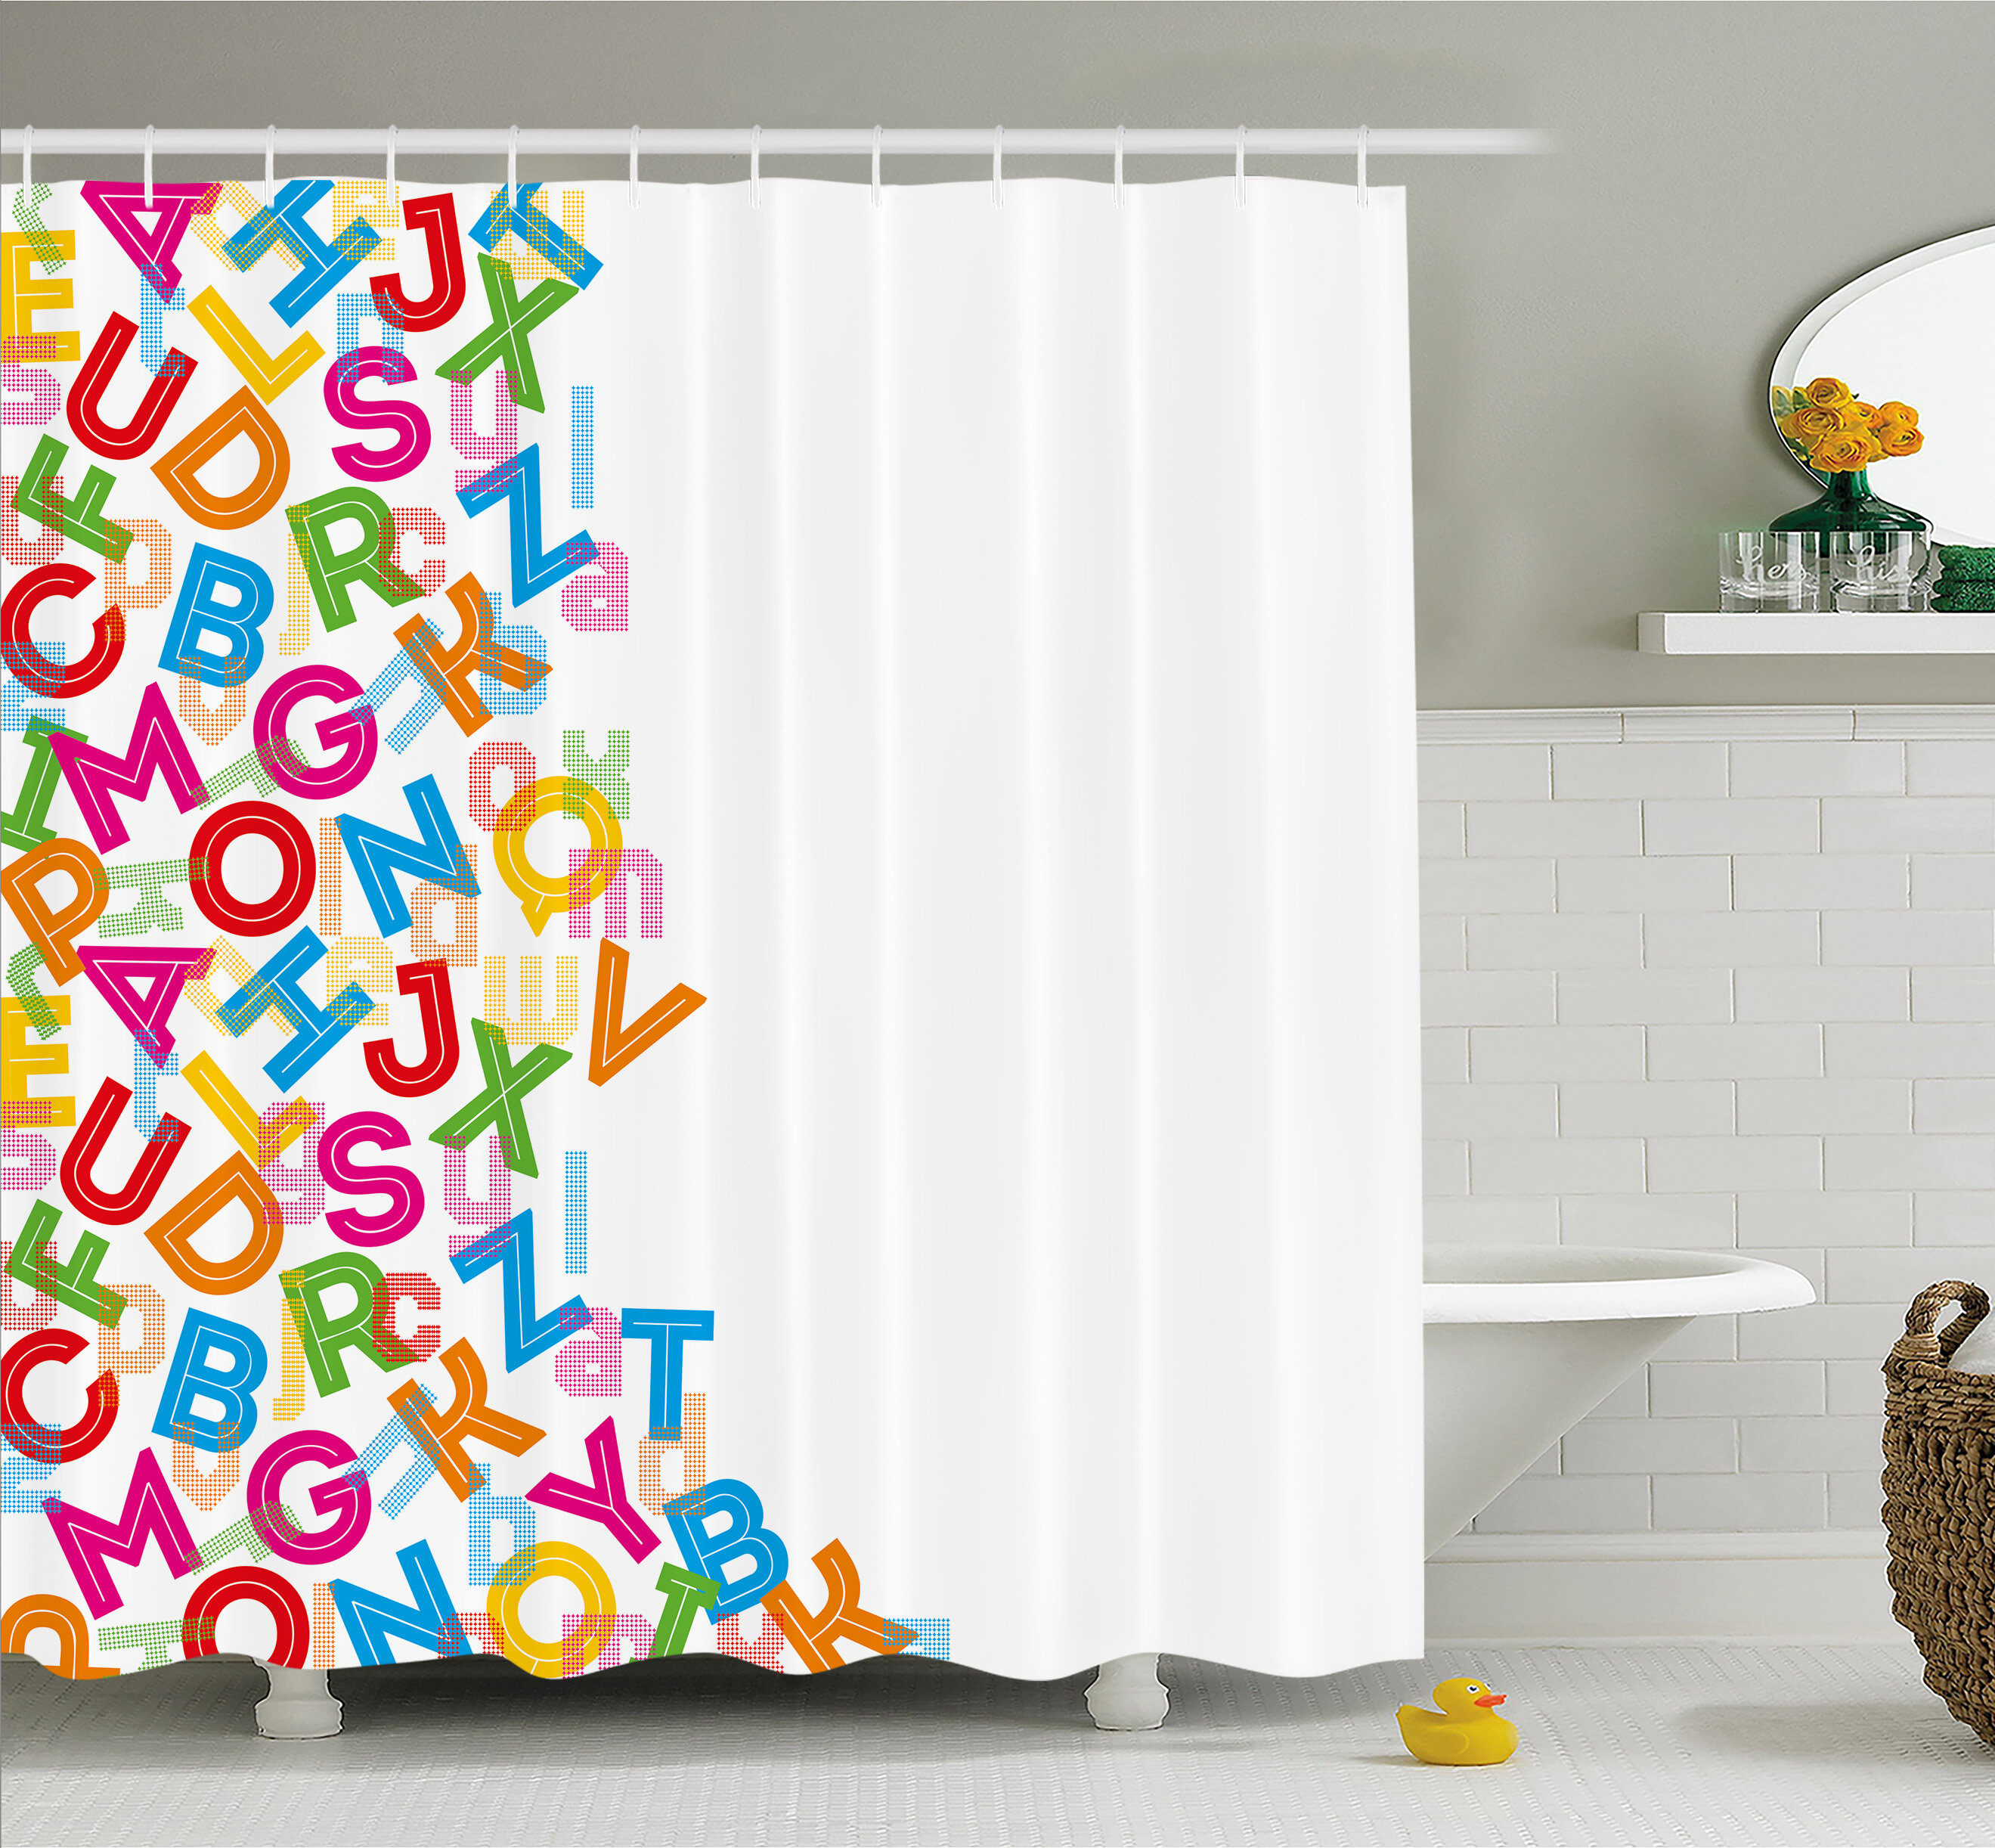 Ambesonne Alphabet Background With Letter Icons Literature Textured Fun Print Shower Curtain Set